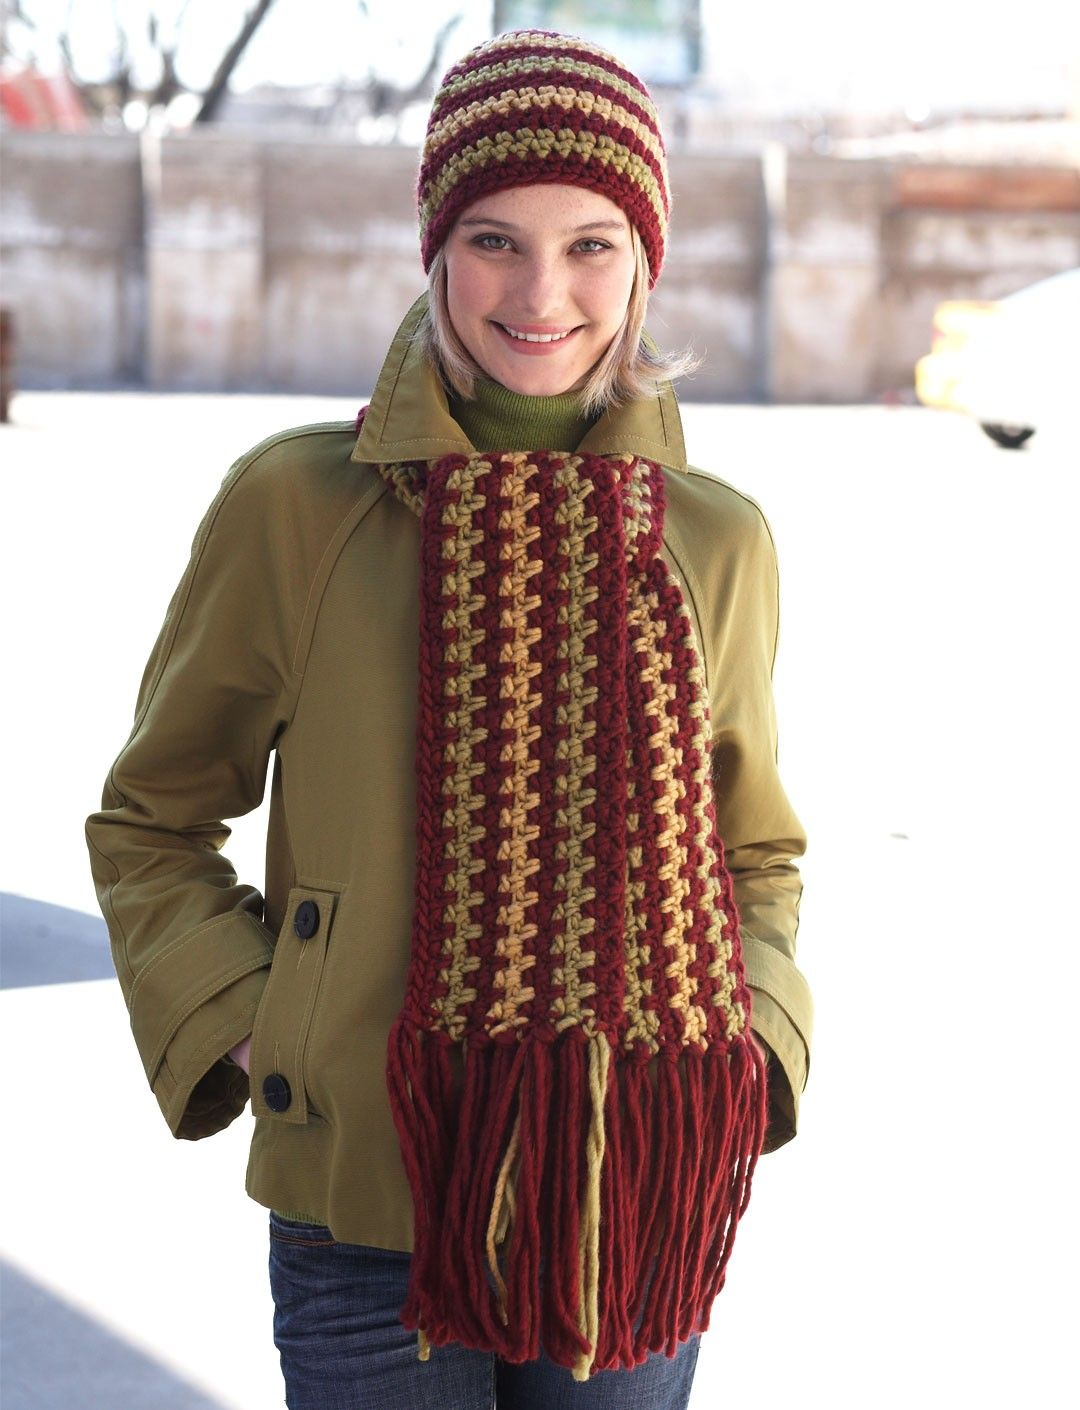 Free crochet pattern levelbeginner yarn 5 bulky the beautiful bold colors of bernat roving make this hat and scarf set perfect for the chilly weather crochet this free scarf and hat pattern for yourself bankloansurffo Image collections